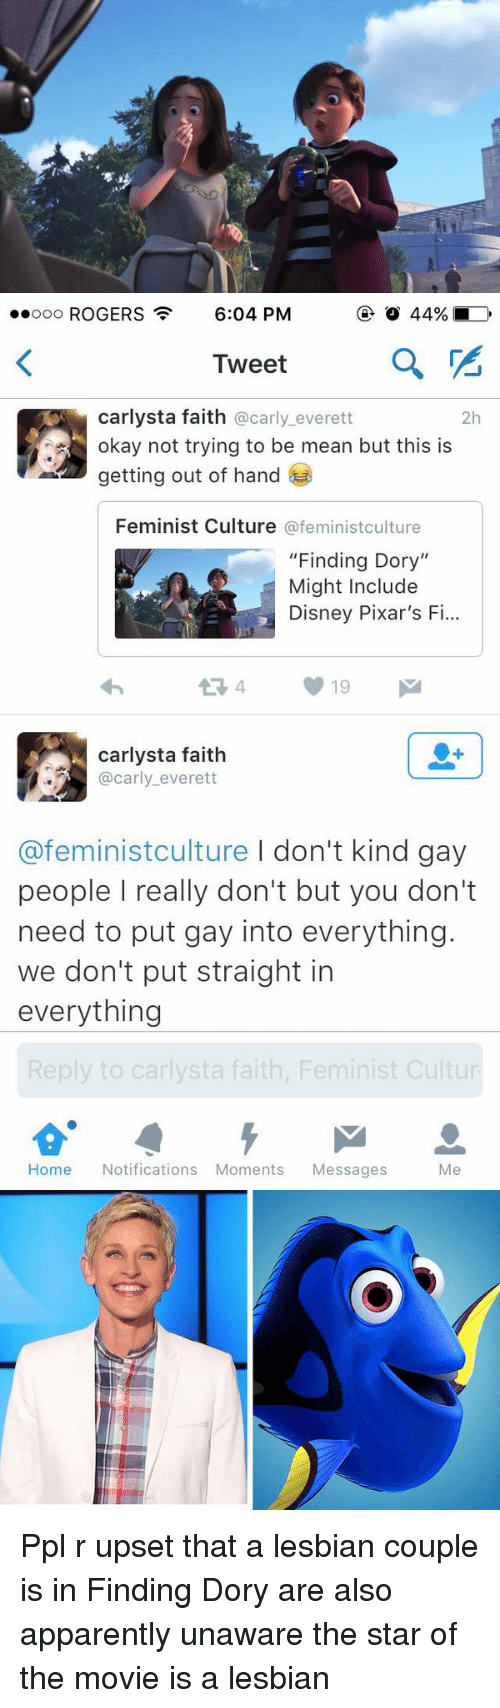 "Â'¨: ooooo ROGERS  6:04 PM  a  Tweet  Carlysta faith @carly everett  2h  okay not trying to be mean but this is  getting out of hand  Feminist Culture  @feminist culture  ""Finding Dory""  Might Include  Disney Pixar's F  carlysta faith  @carly everett  @feminist culture I don't kind gay  people really don't but you don't  need to put gay into everything.  we don't put straight in  everything  Reply to carlysta faith, Feminist Cultur  Home Notifications Moments Messages  Me Ppl r upset that a lesbian couple is in Finding Dory are also apparently unaware the star of the movie is a lesbian"